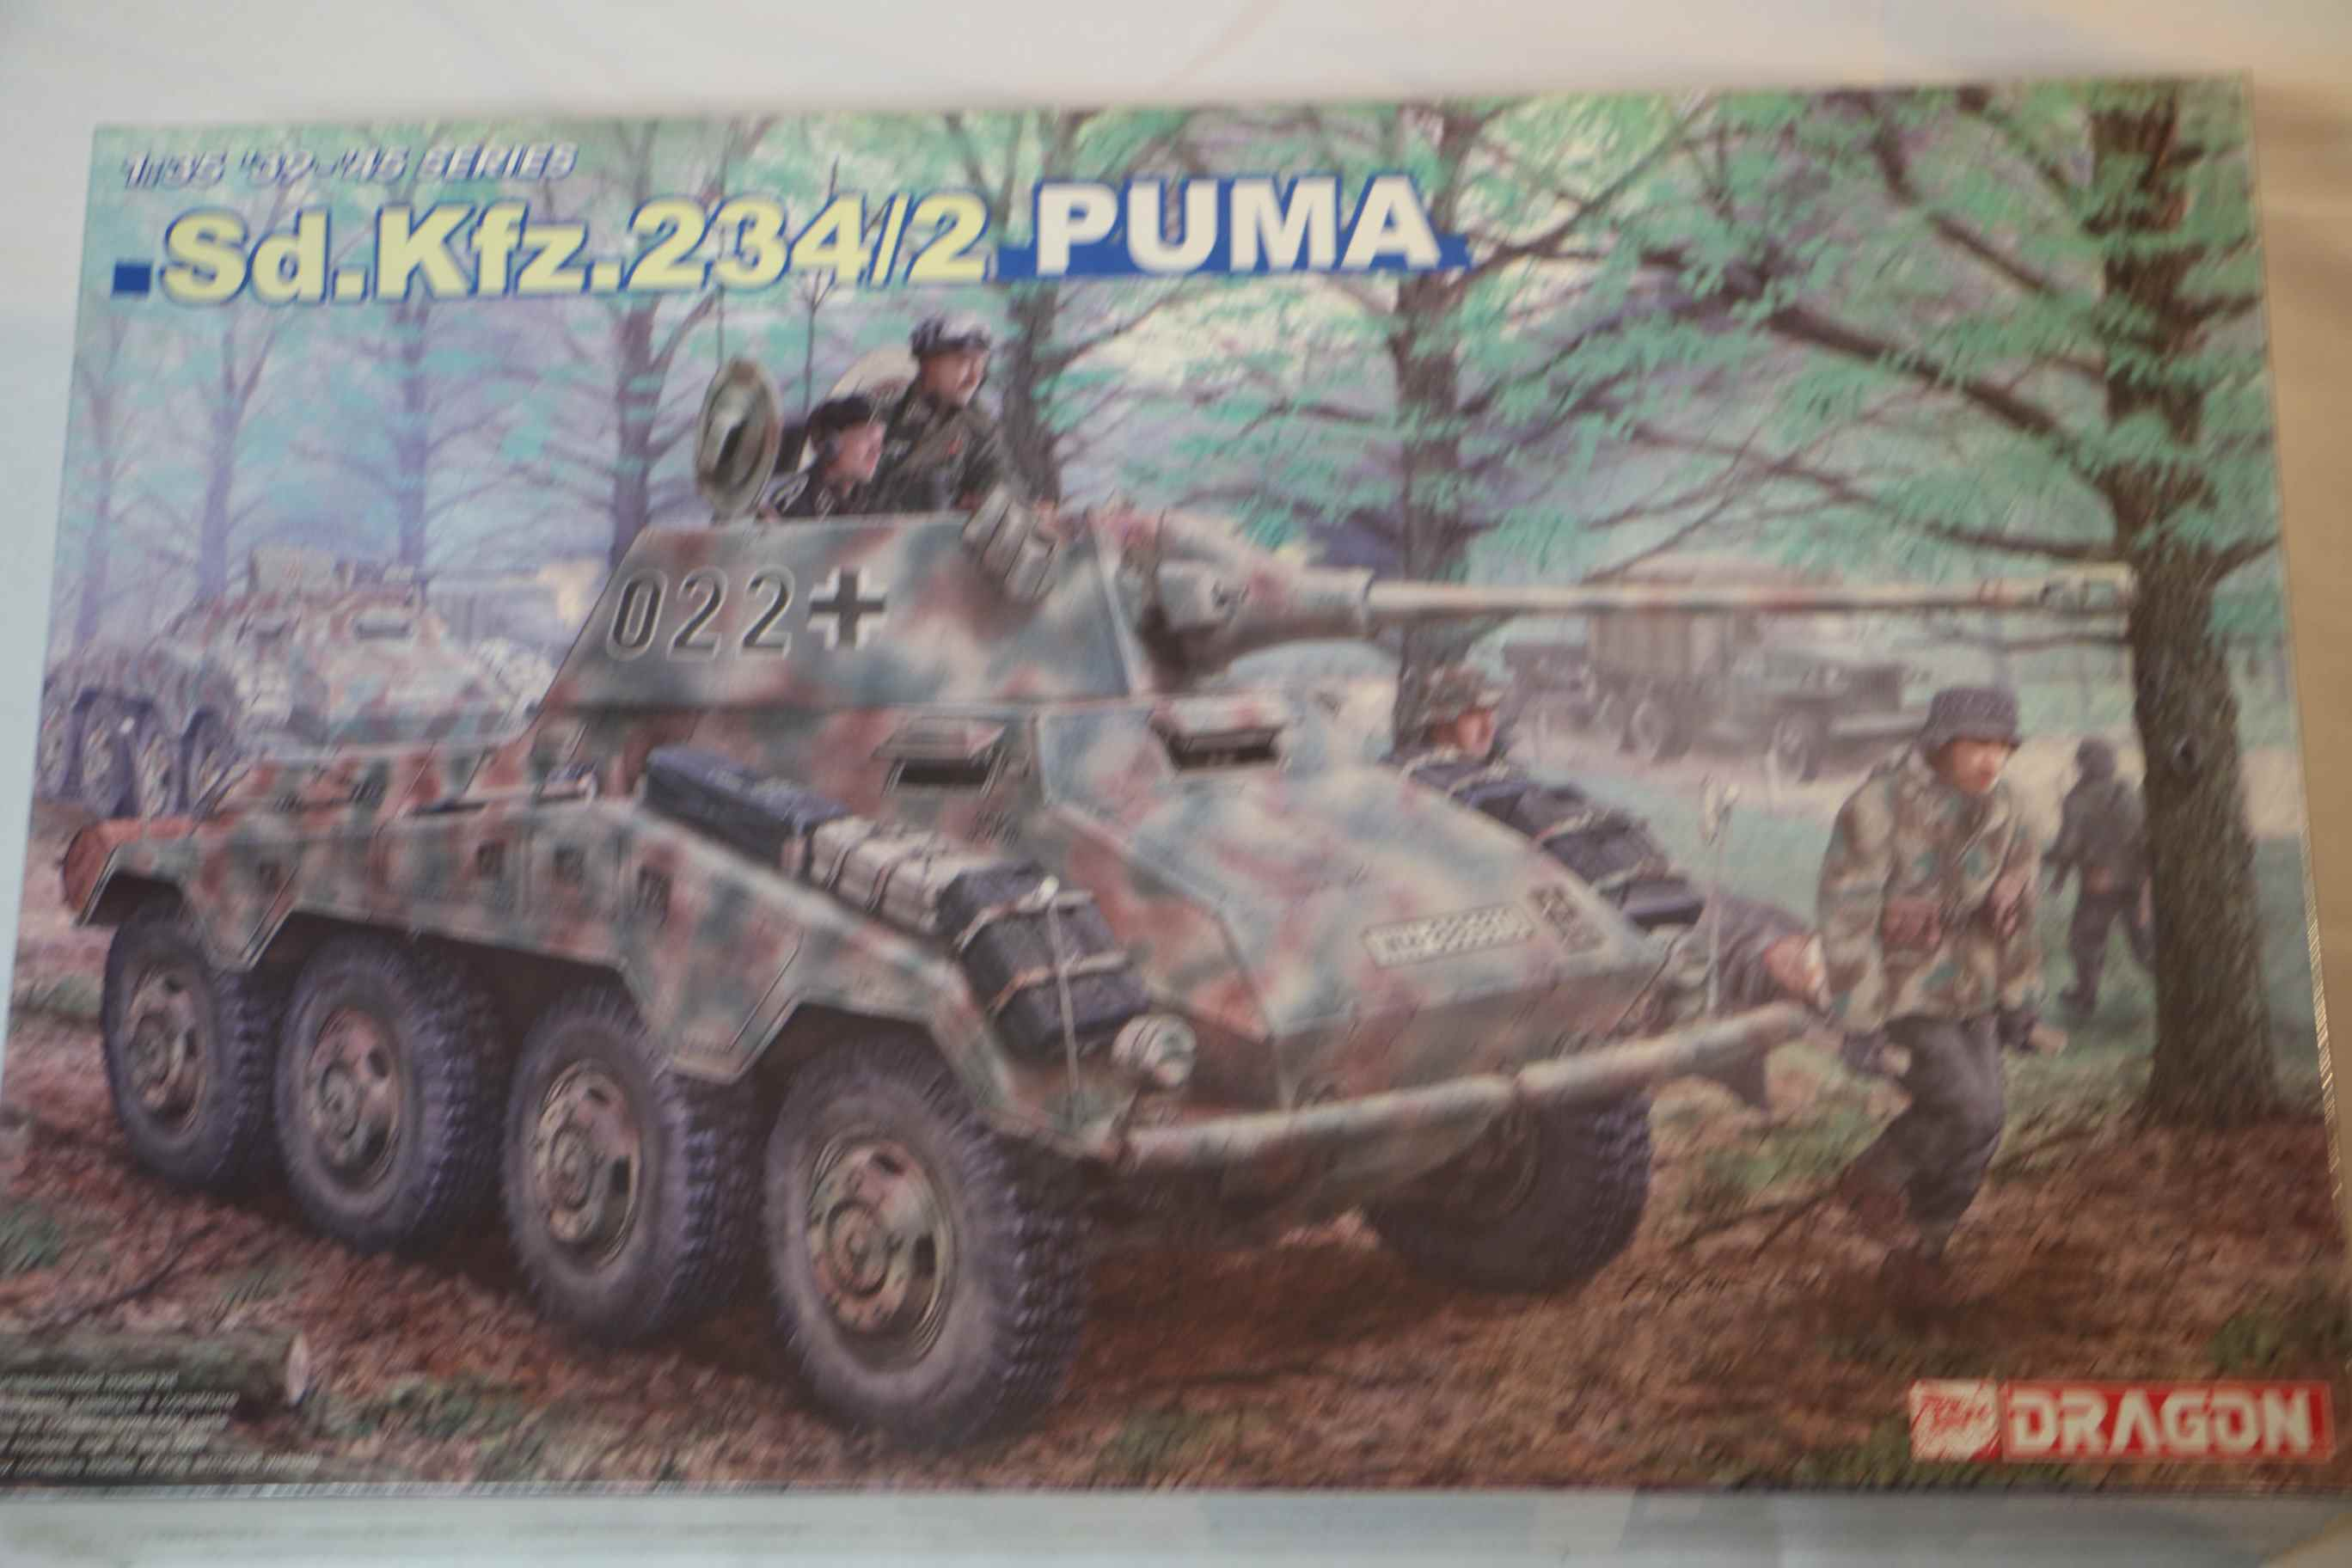 DRA6256 - Dragon 1/35 Sd.Kfz.234/2 Puma Armoured Car 39-45 series